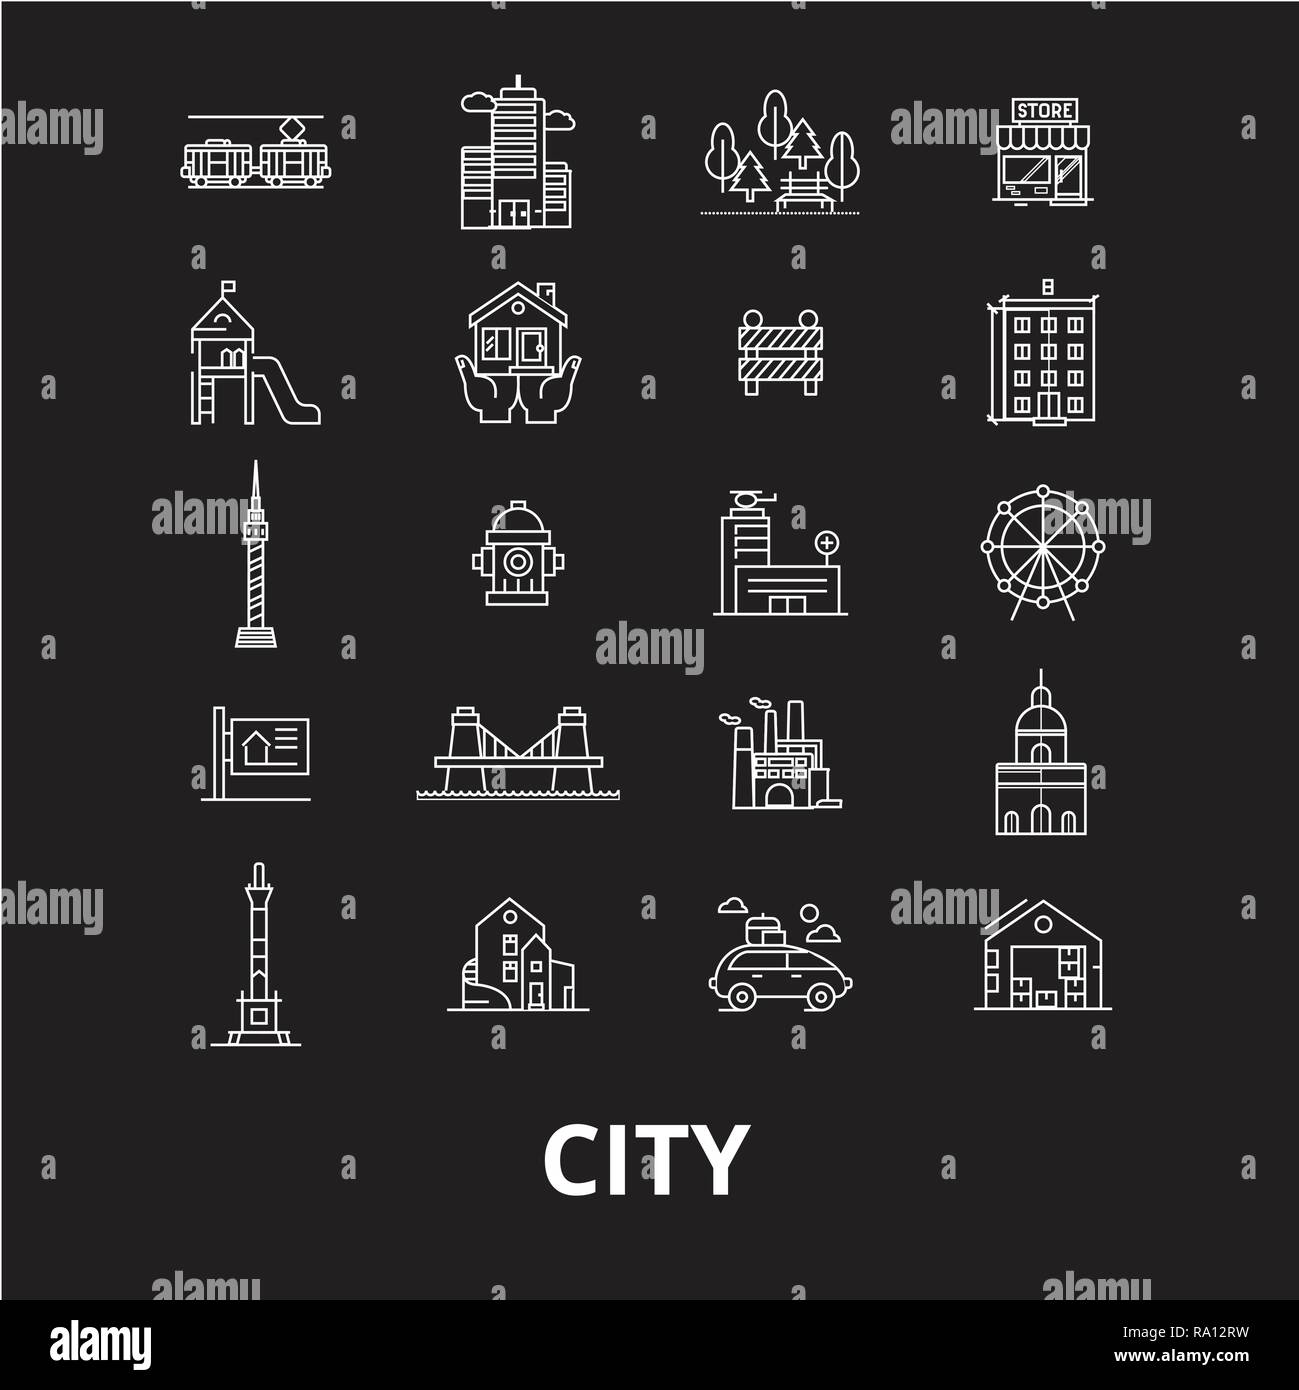 City editable line icons vector set on black background. City white outline illustrations, signs, symbols Stock Vector